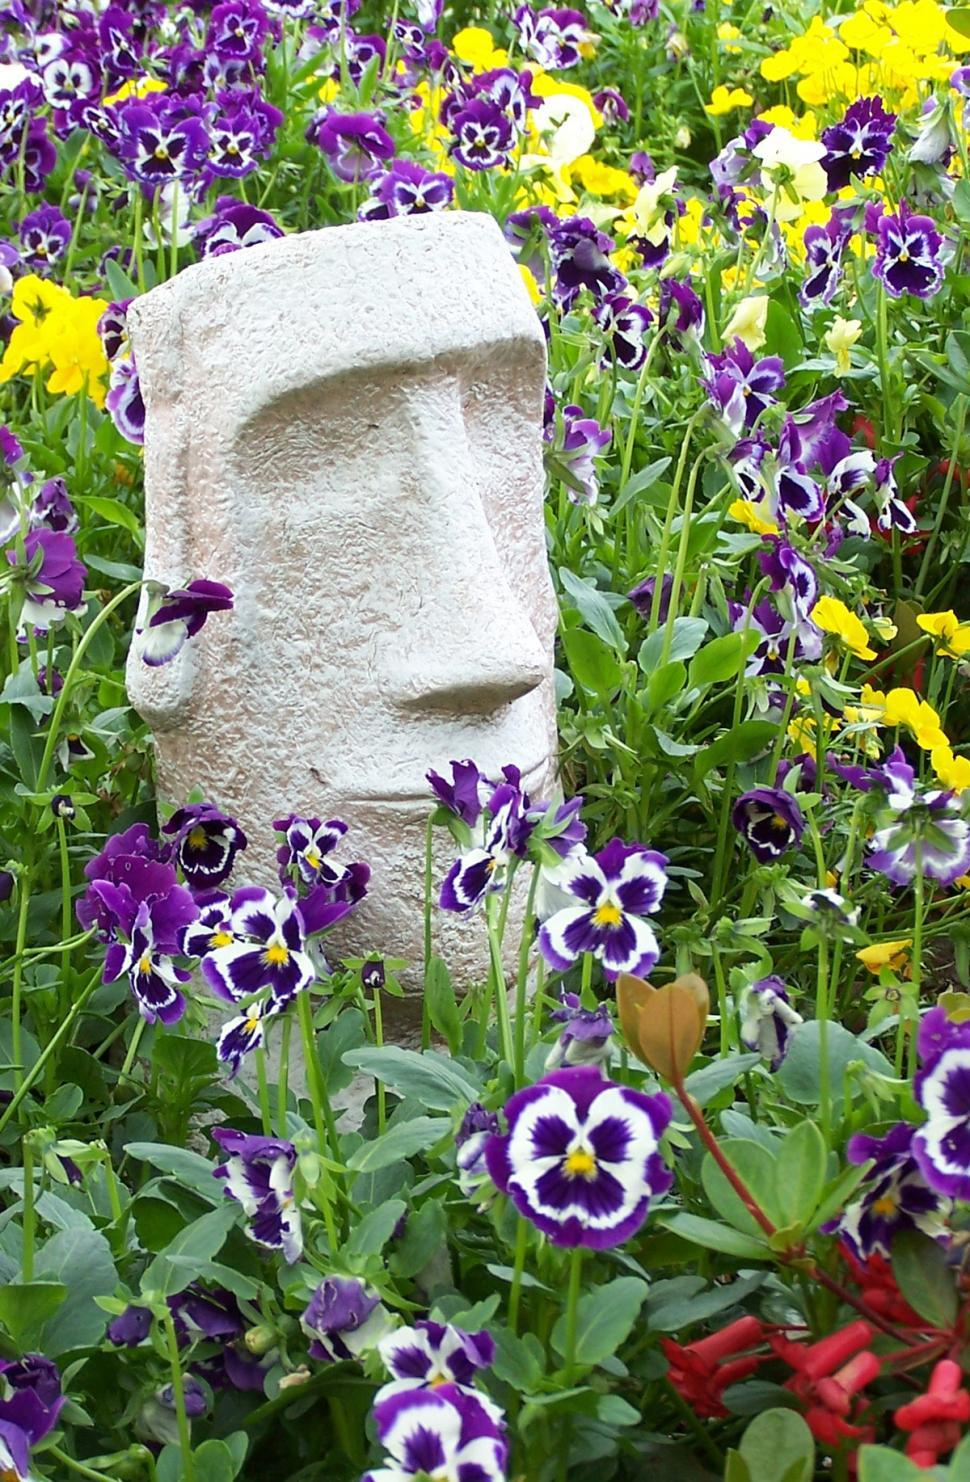 Download Free Stock HD Photo of A touch tribal among the pansies Online